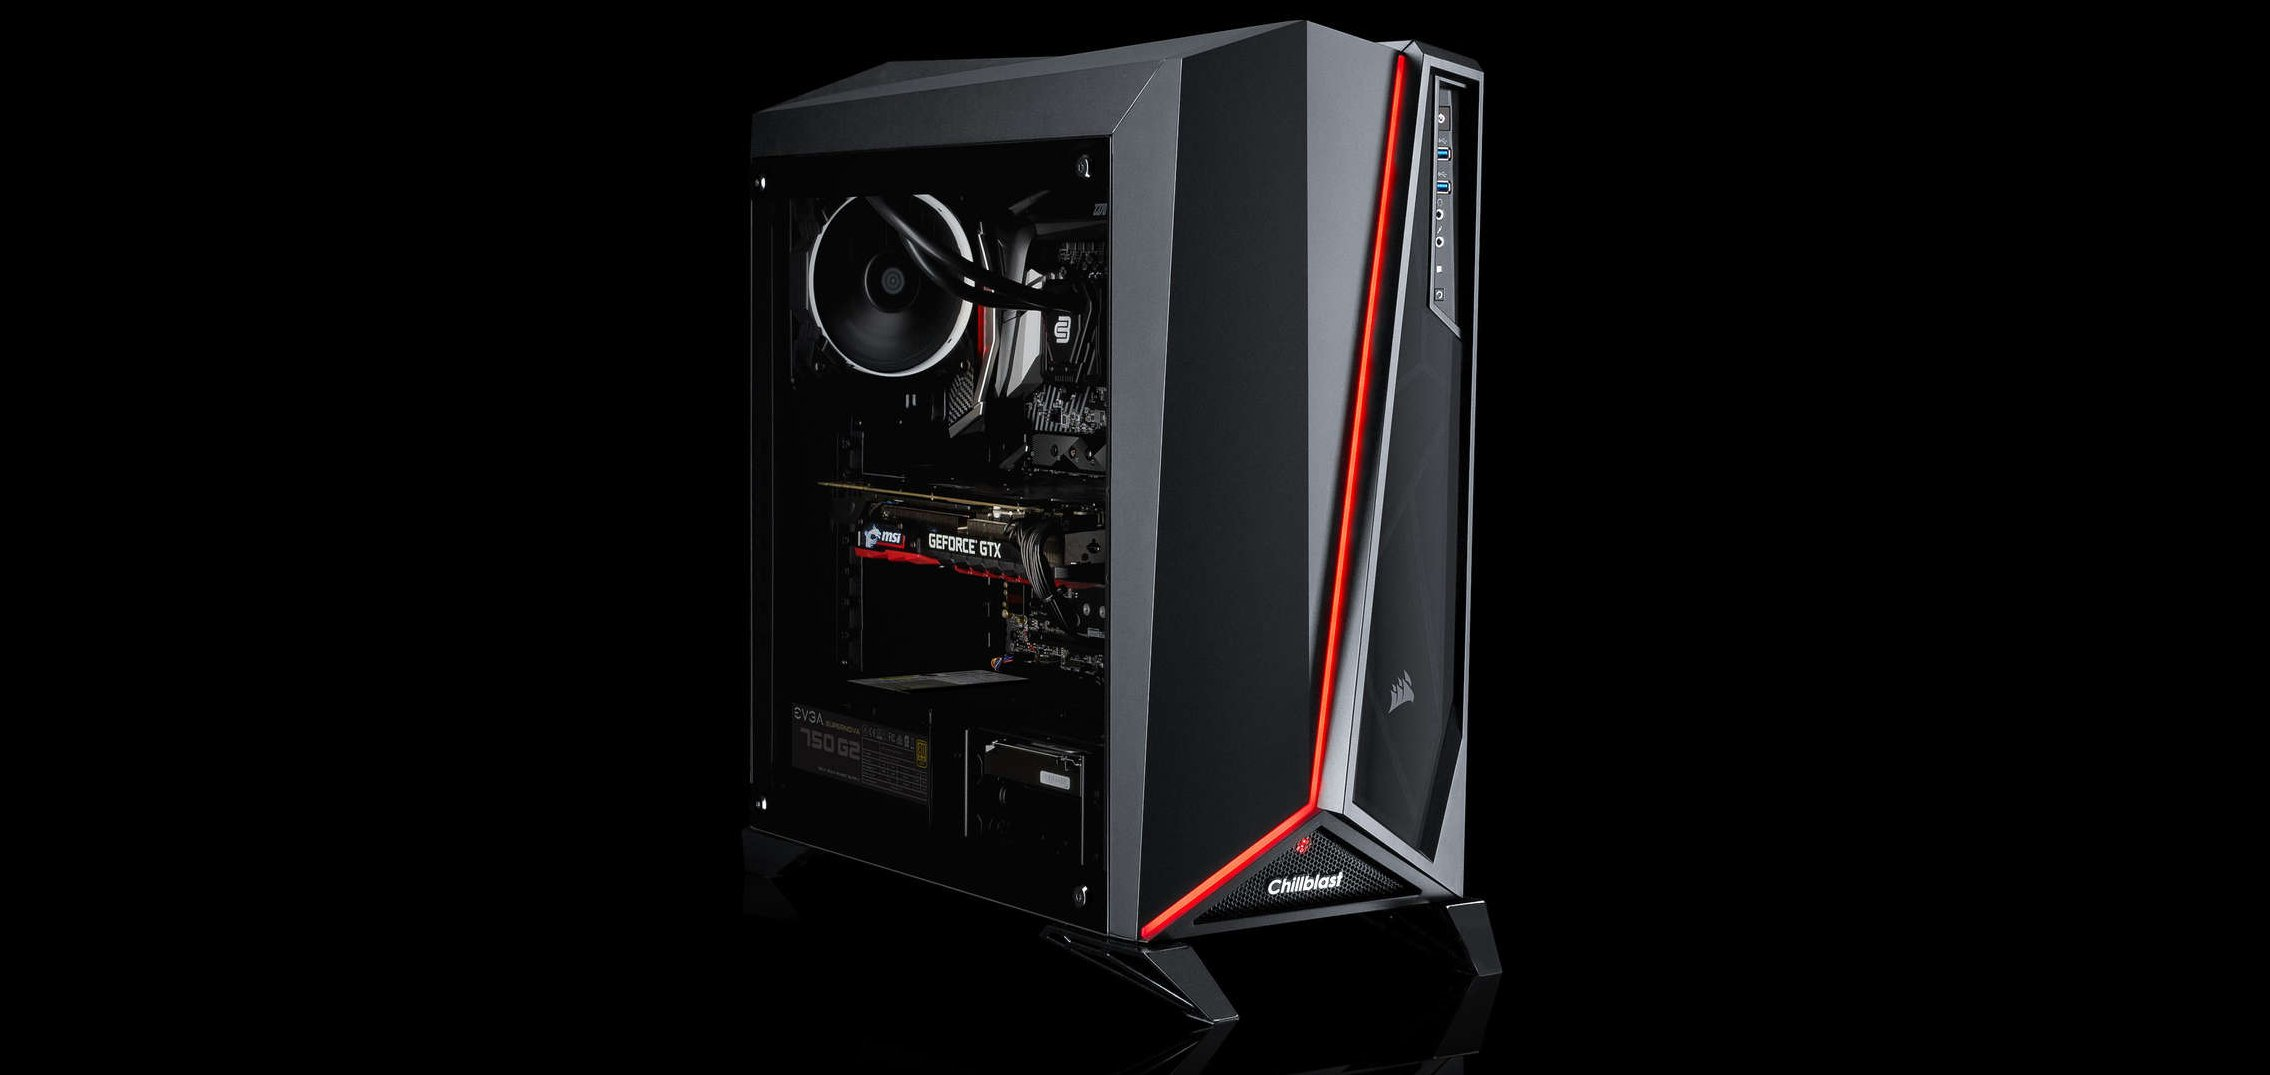 Chillblast Fusion Fireblade review: Superb gaming PC for the price  Expert Reviews